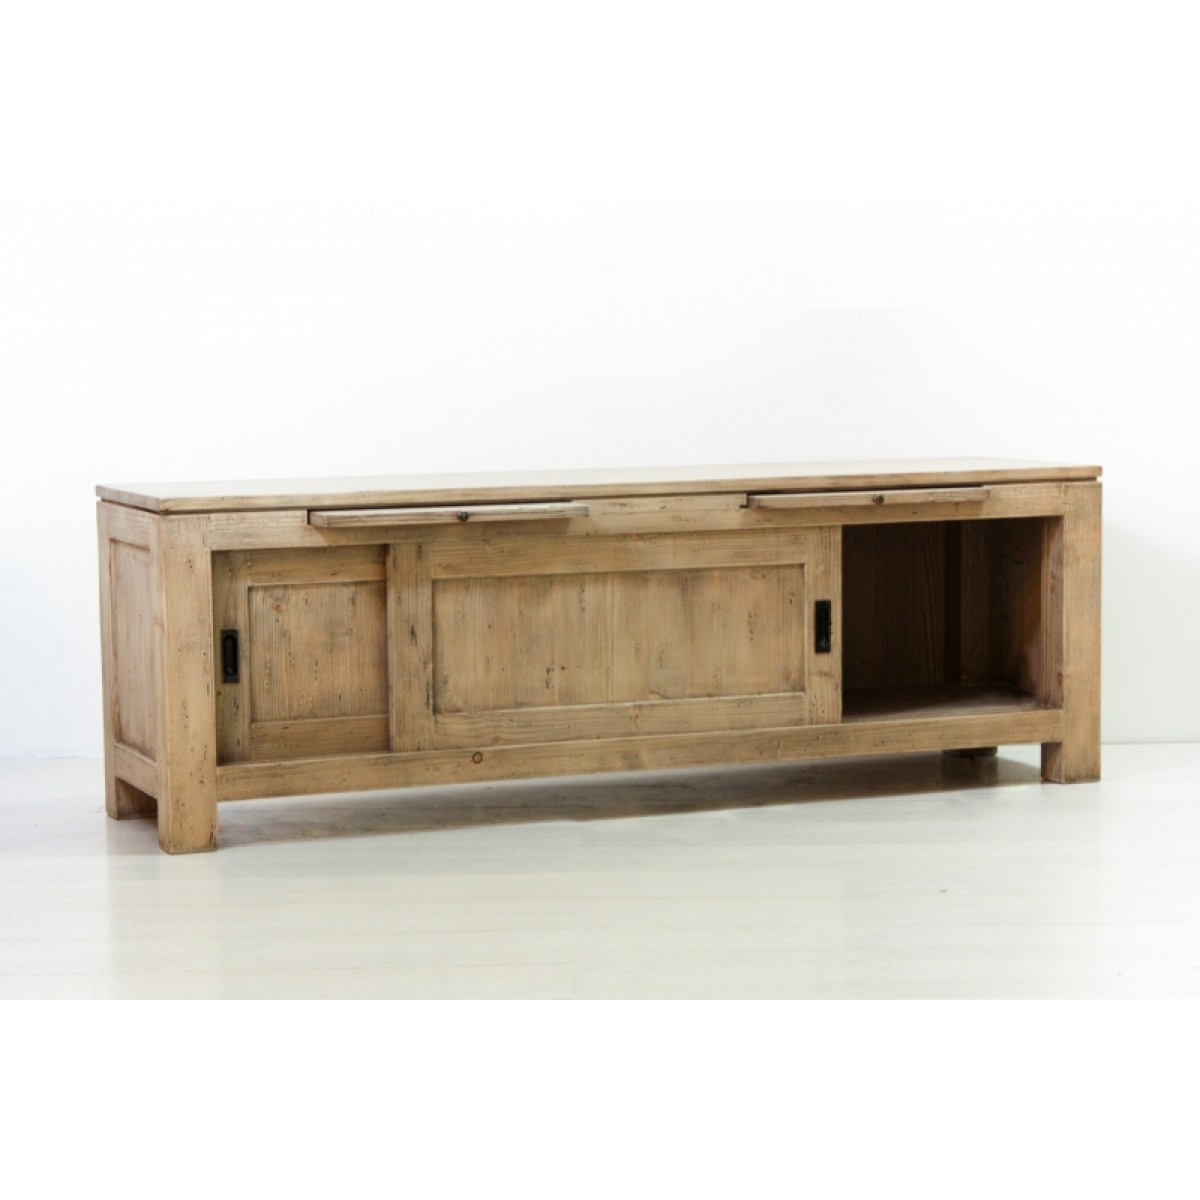 Mobile porta tv in legno massello di abete cm 150x40x50h - CollyShop